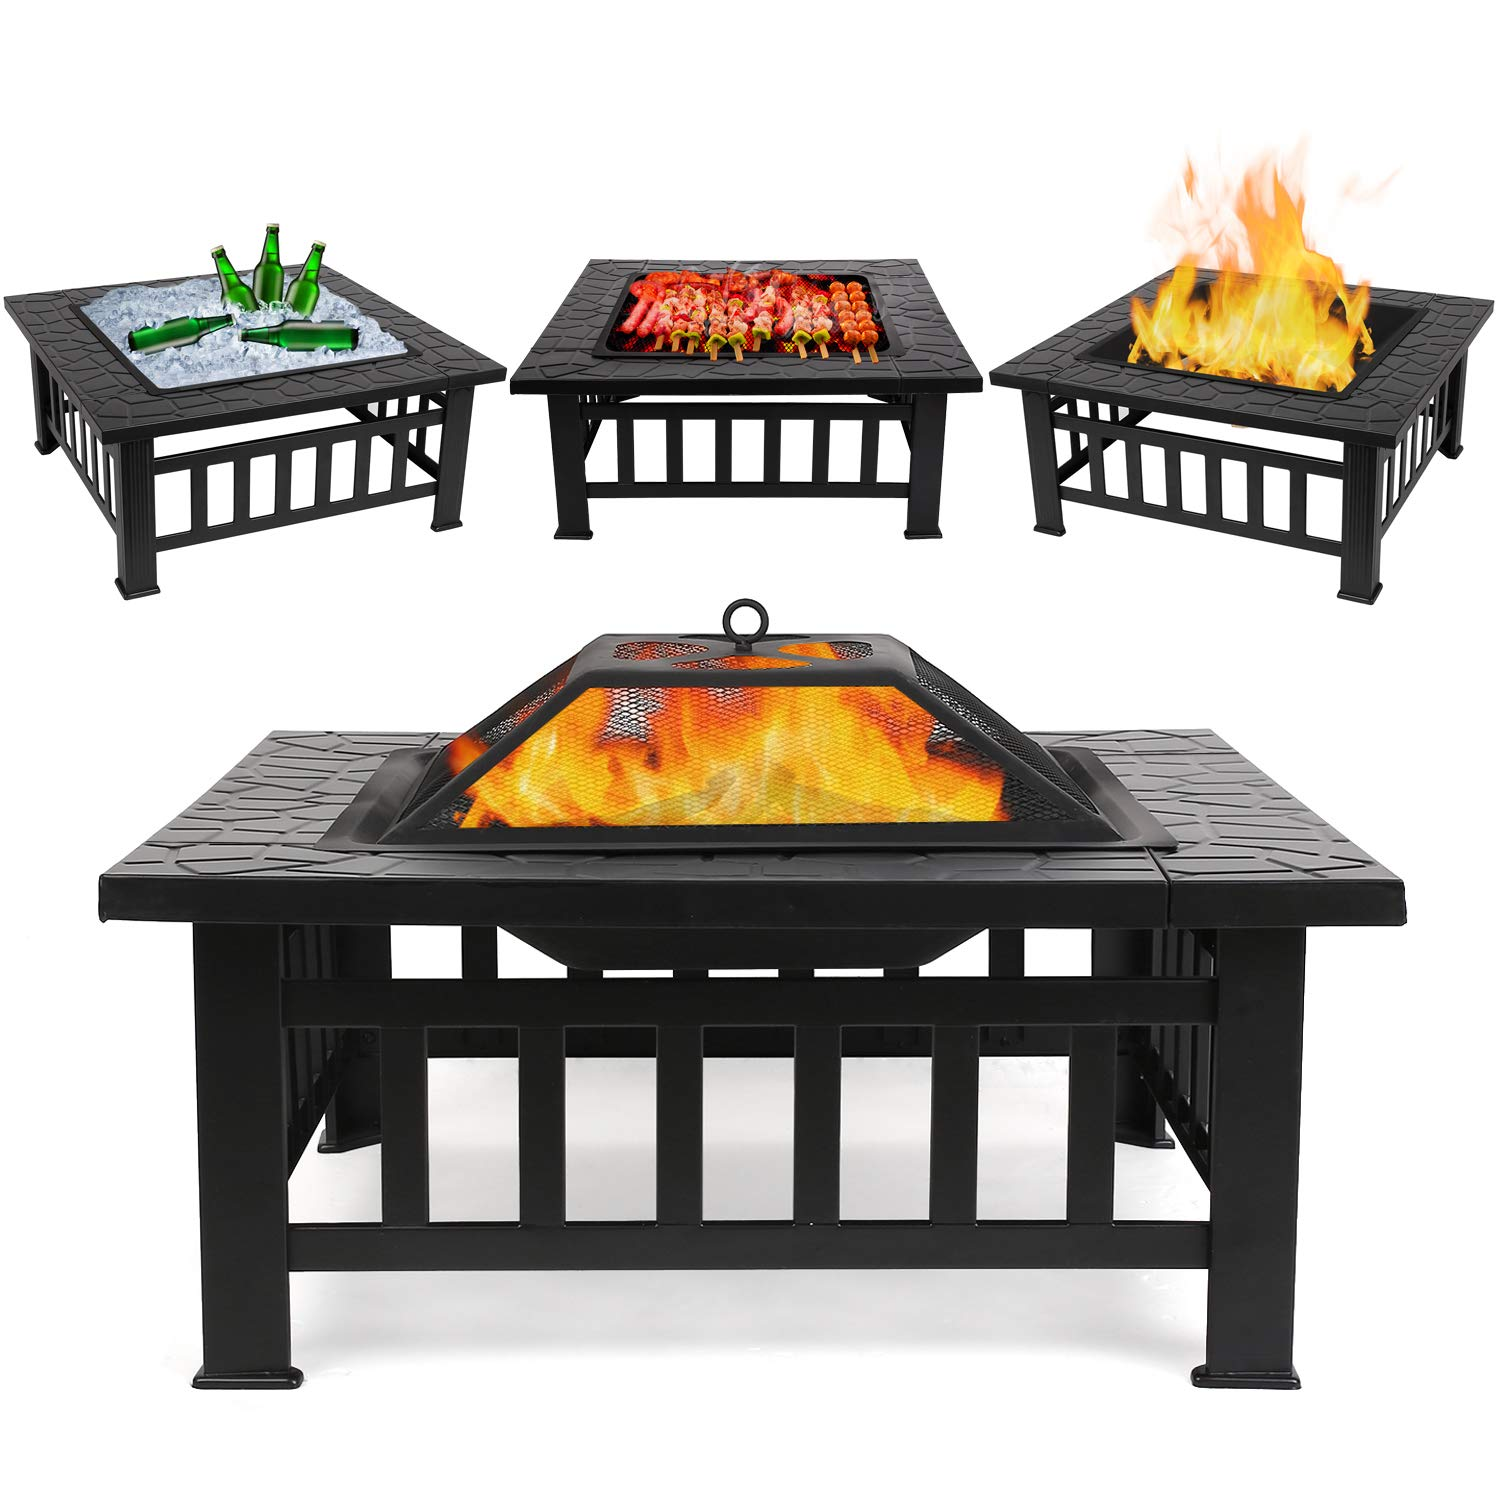 KY8181FP Outdoor Fire Pit